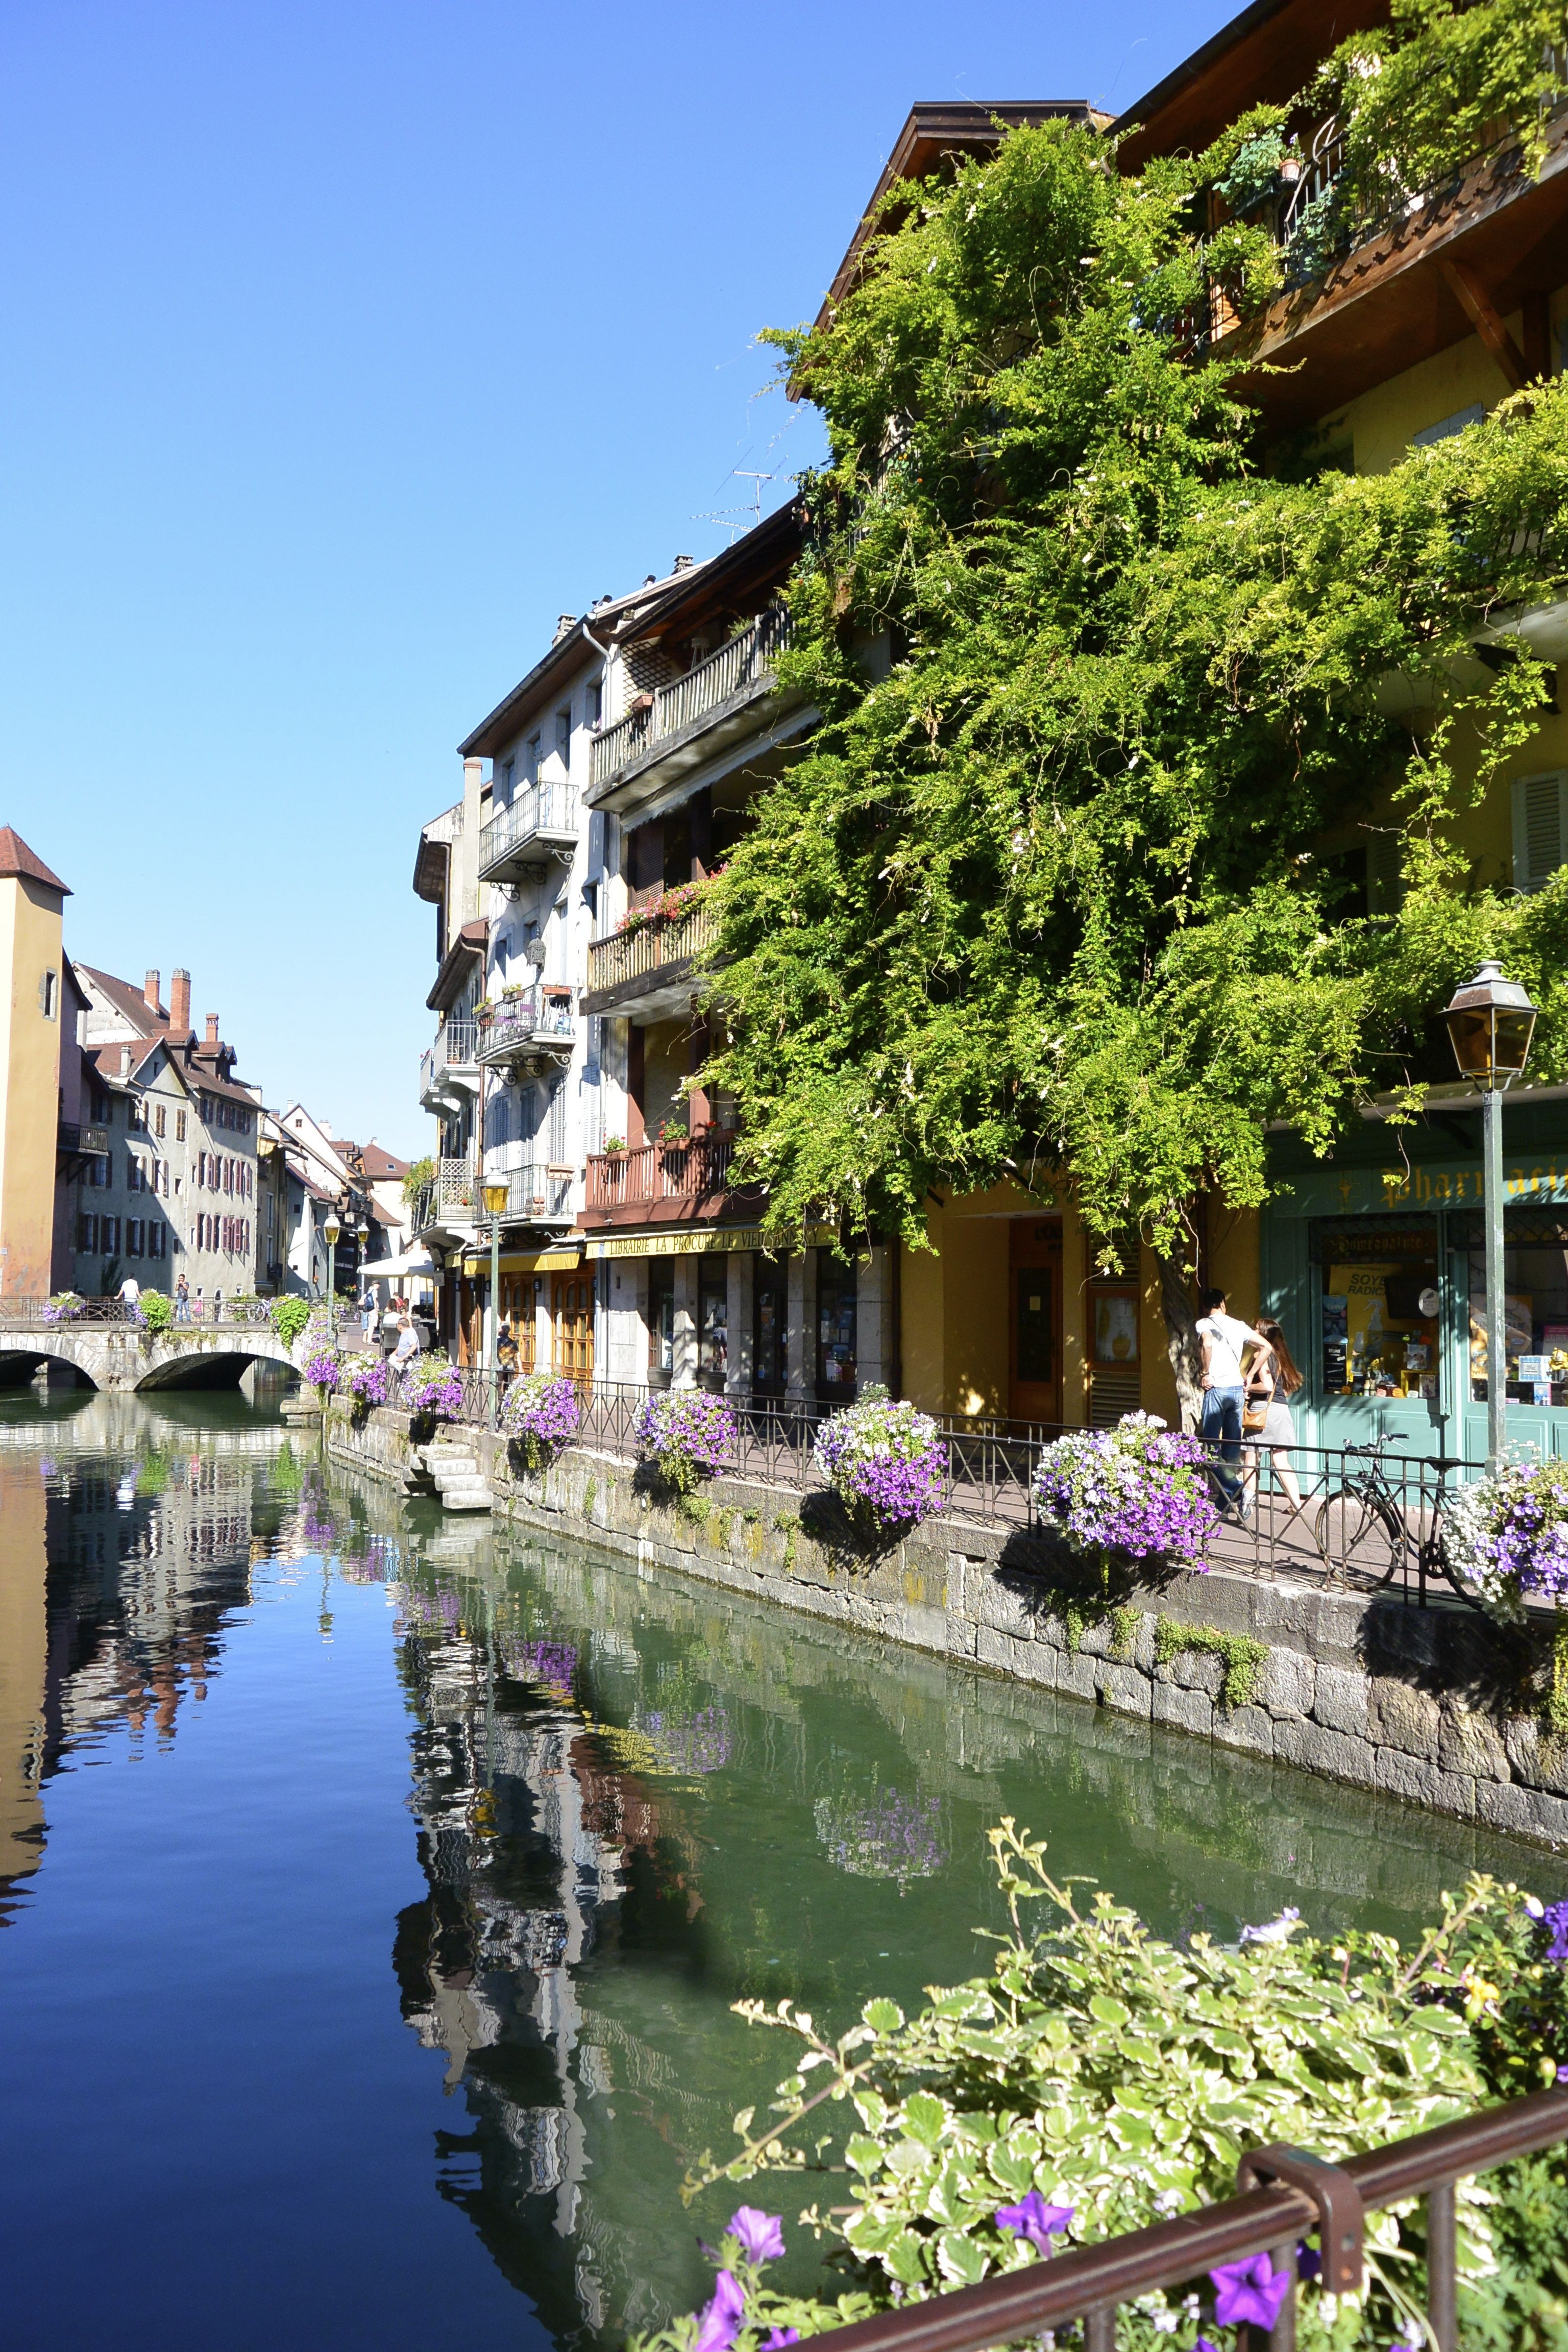 Reasons Why You Should Visit Annecy, France |Annecy France Attractions